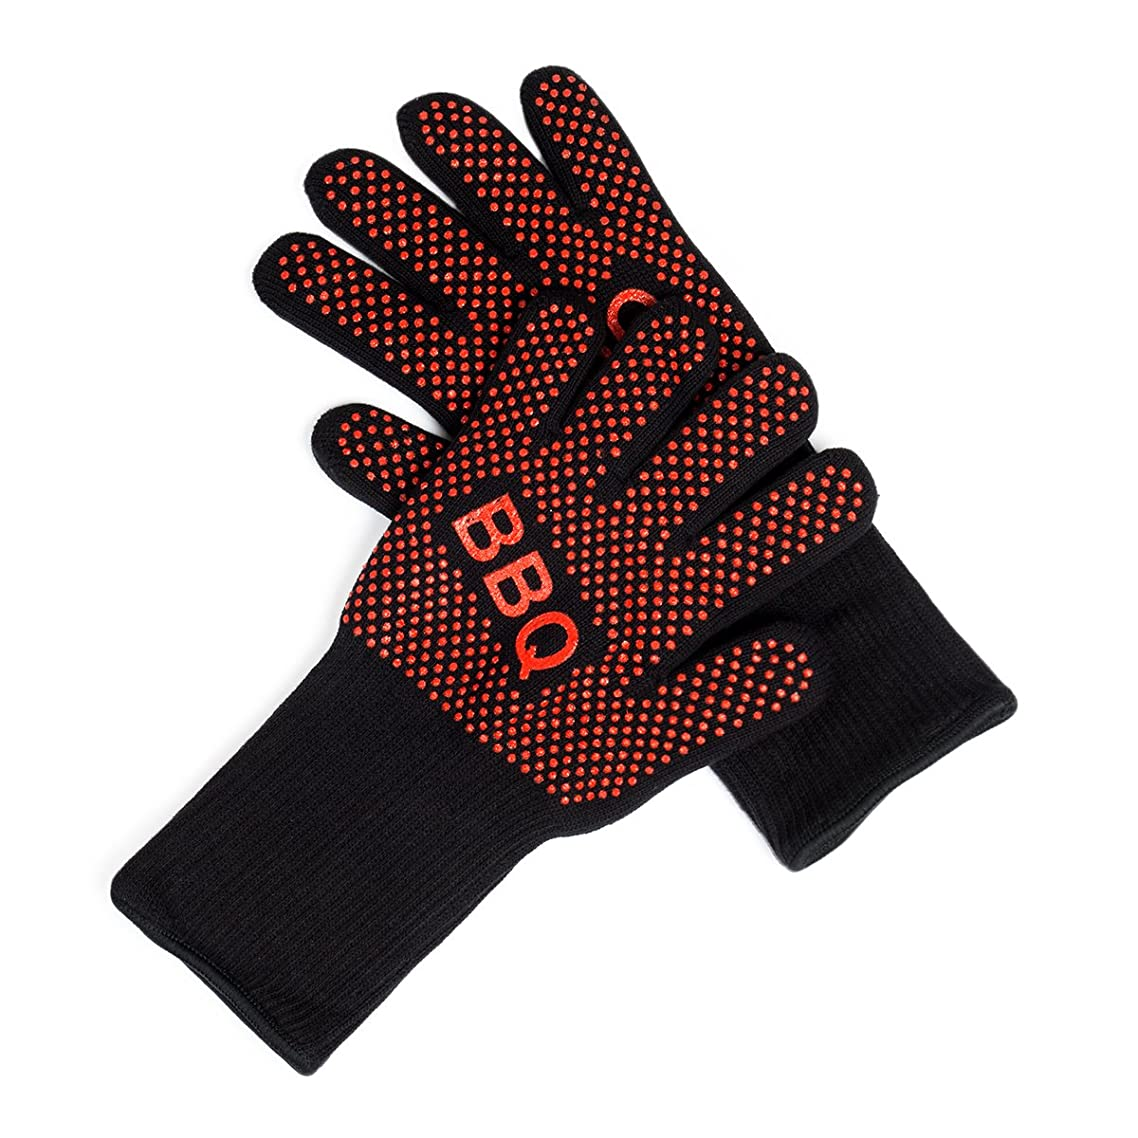 HUIQMALL Heat Resistant Oven Mitts BBQ Grilling Cooking Gloves 13inch Long for Extra Forearm Protection,1 Pair(Black & Red)